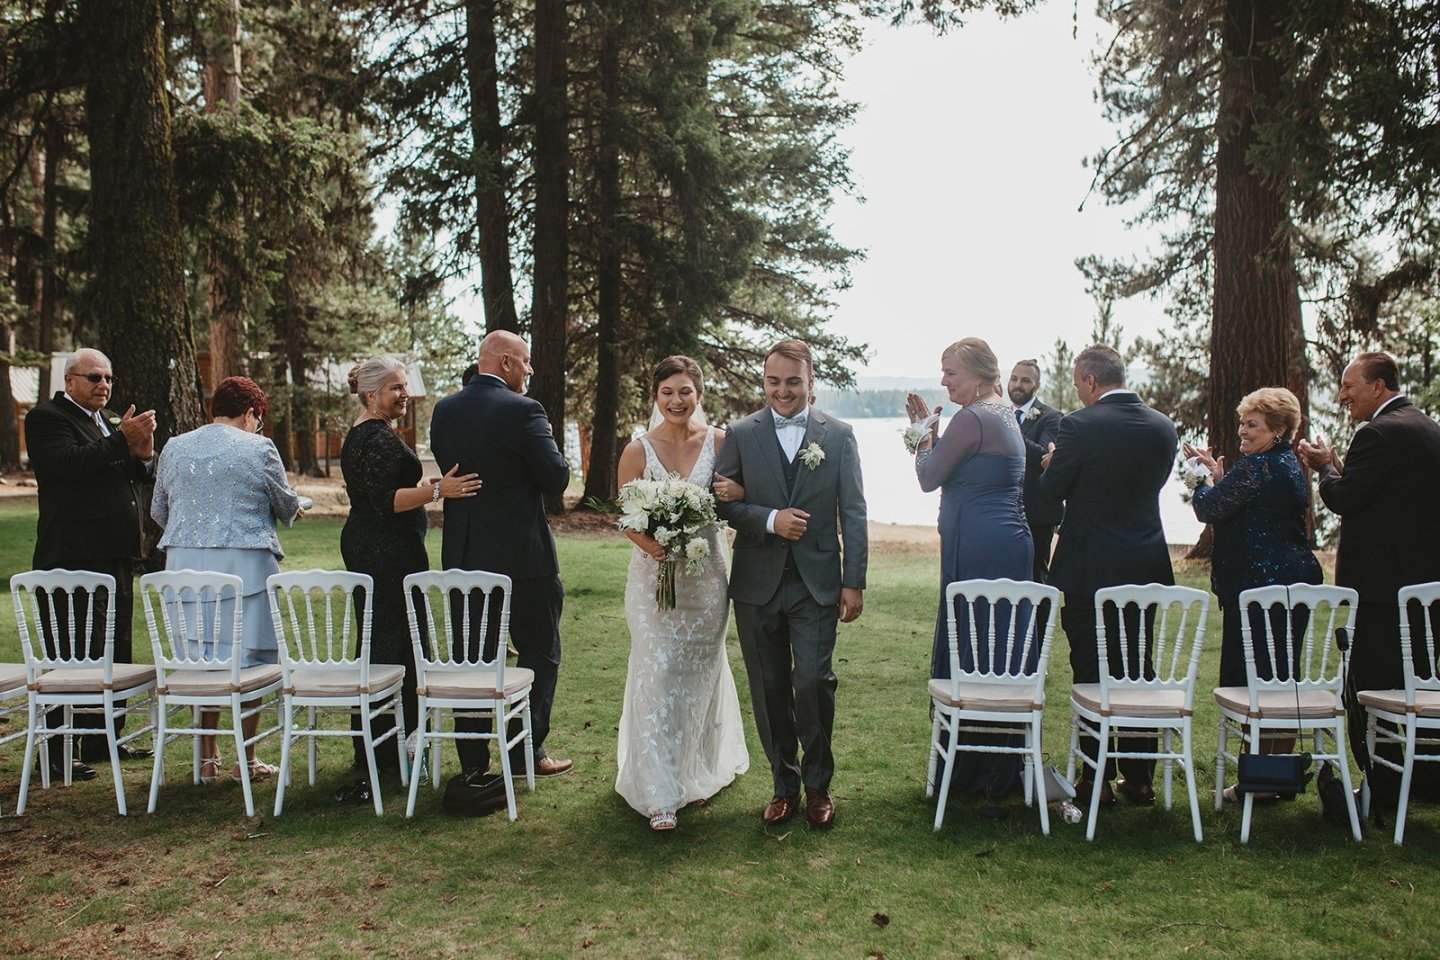 Getting Married at Ponderosa State Park in McCall Idaho